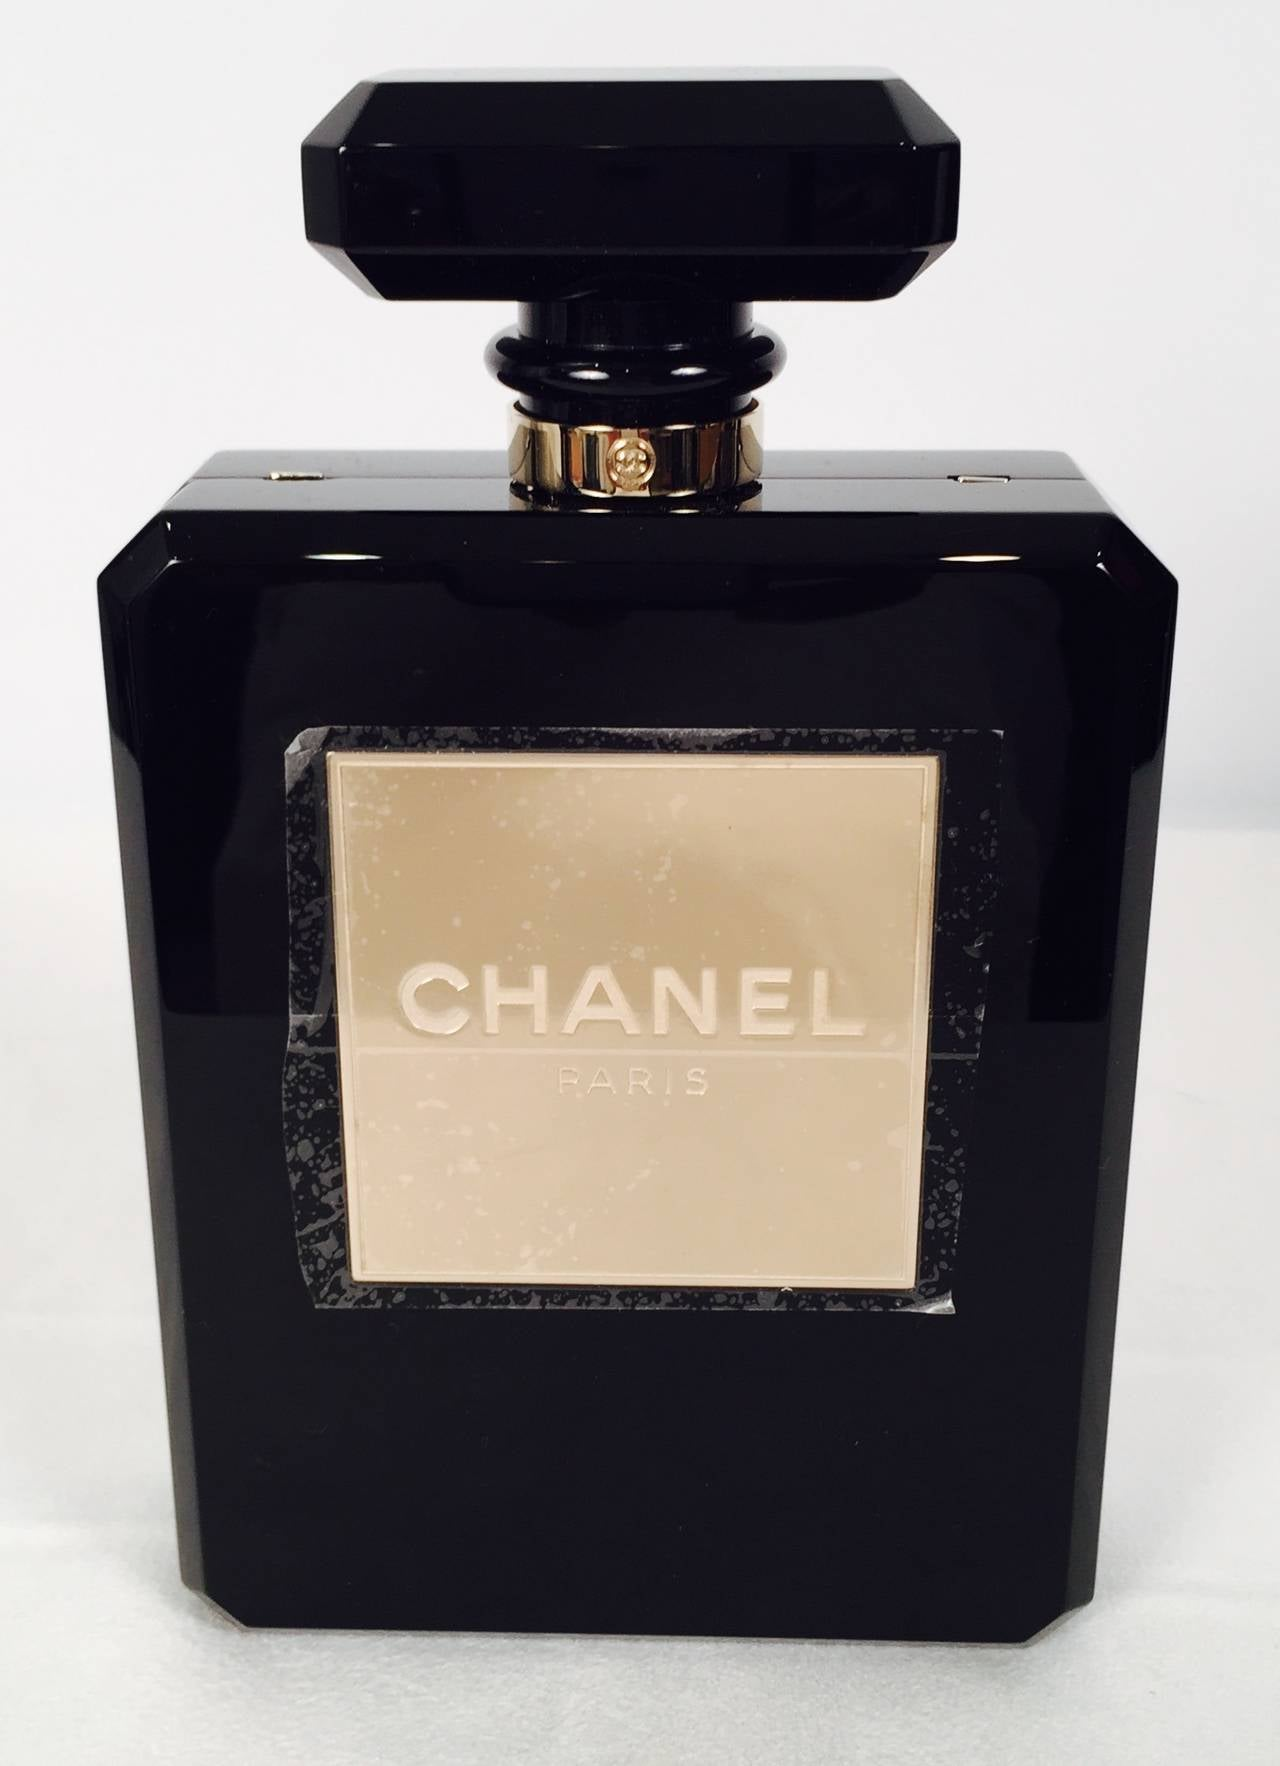 Brand New Limited Edition Chanel Perfume Bottle Evening Bag No. 20247442 2